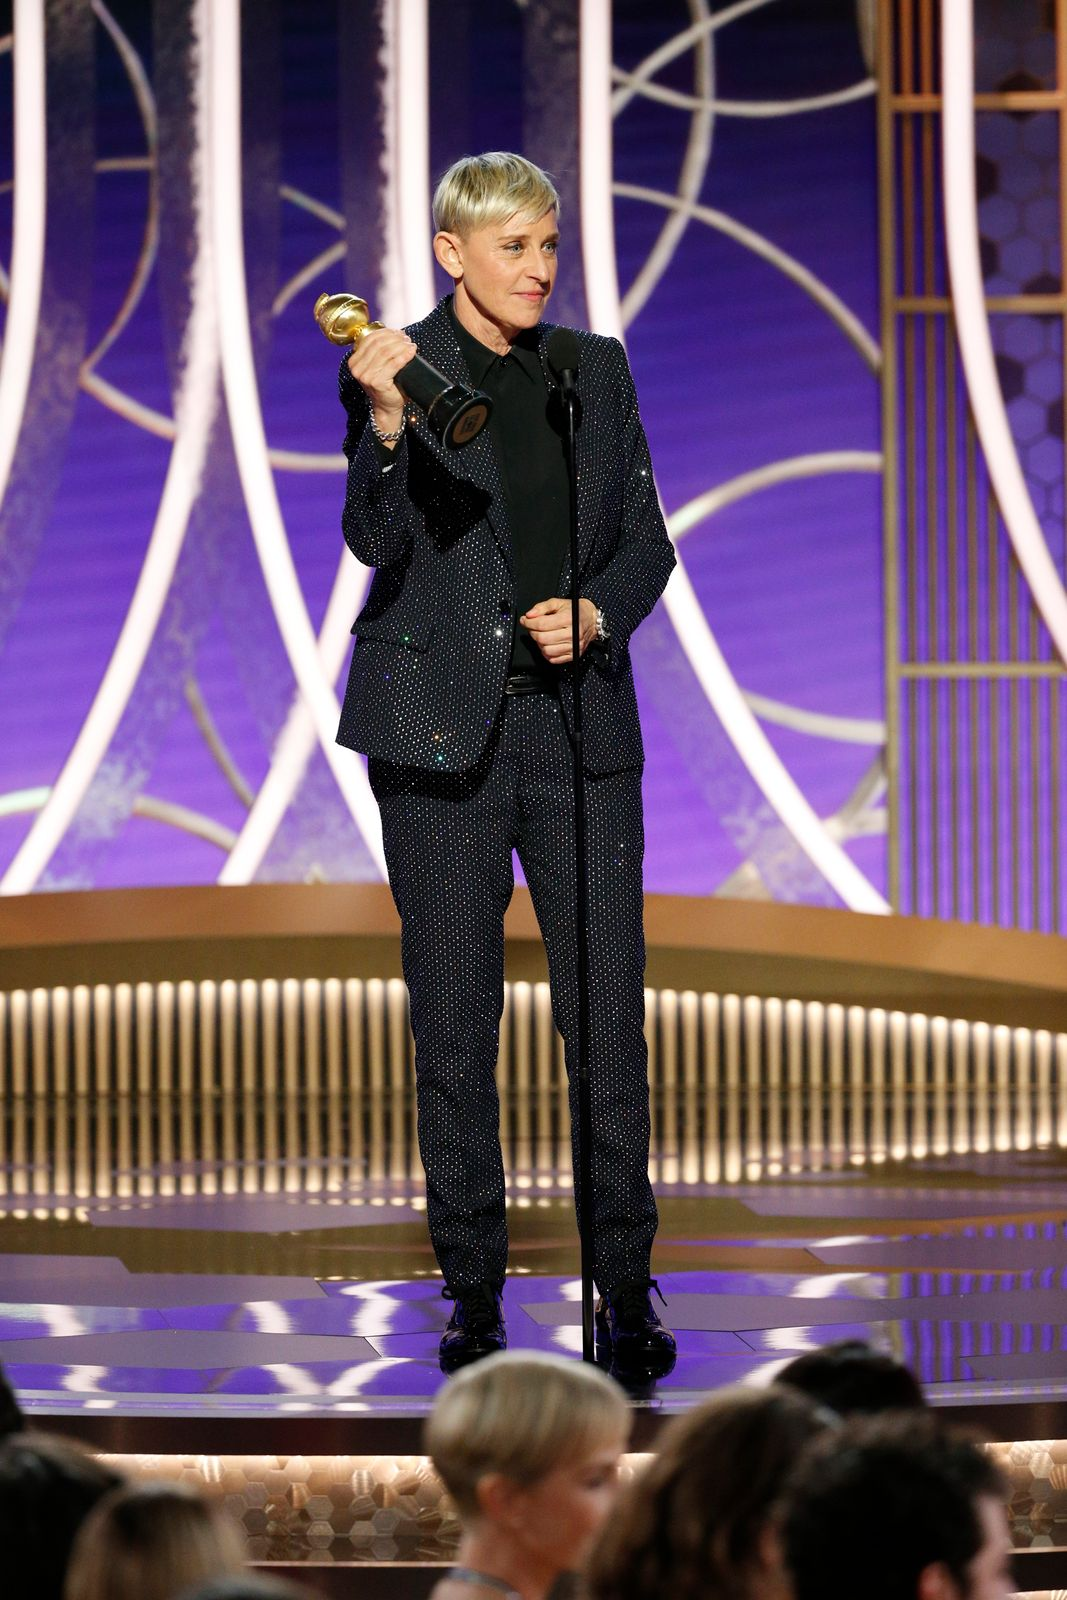 Ellen DeGeneres accepting an award at the 2020 Golden Globes/Photo:Getty Images